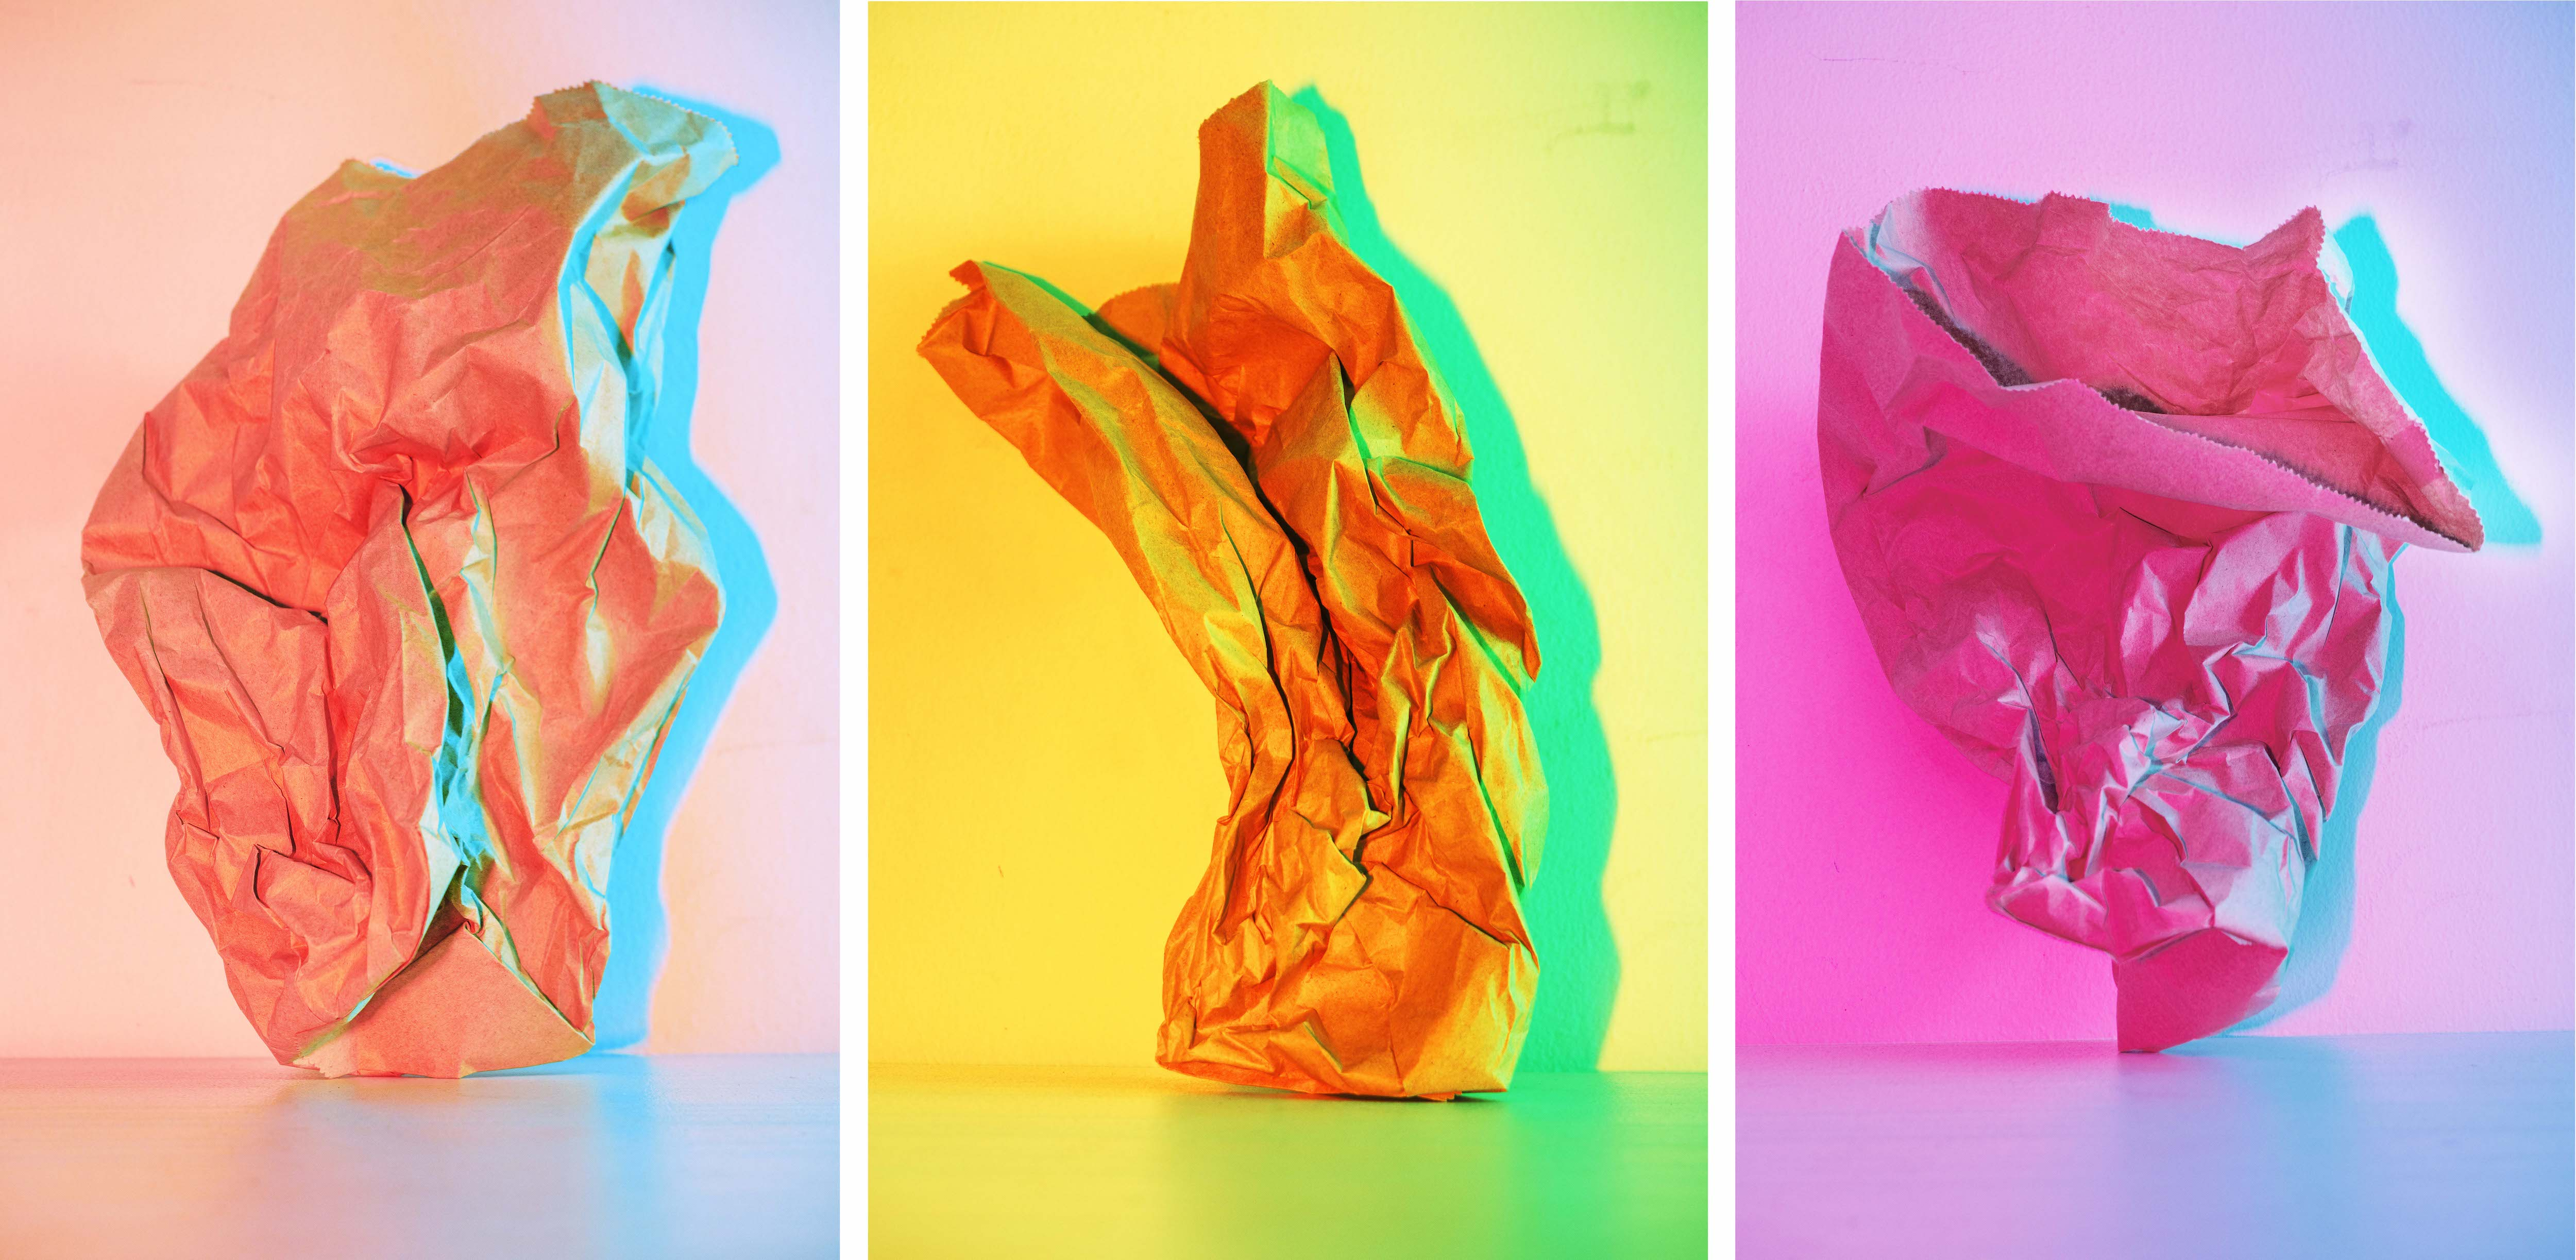 Paper Bag 1, 2, and 3 (Triptych)